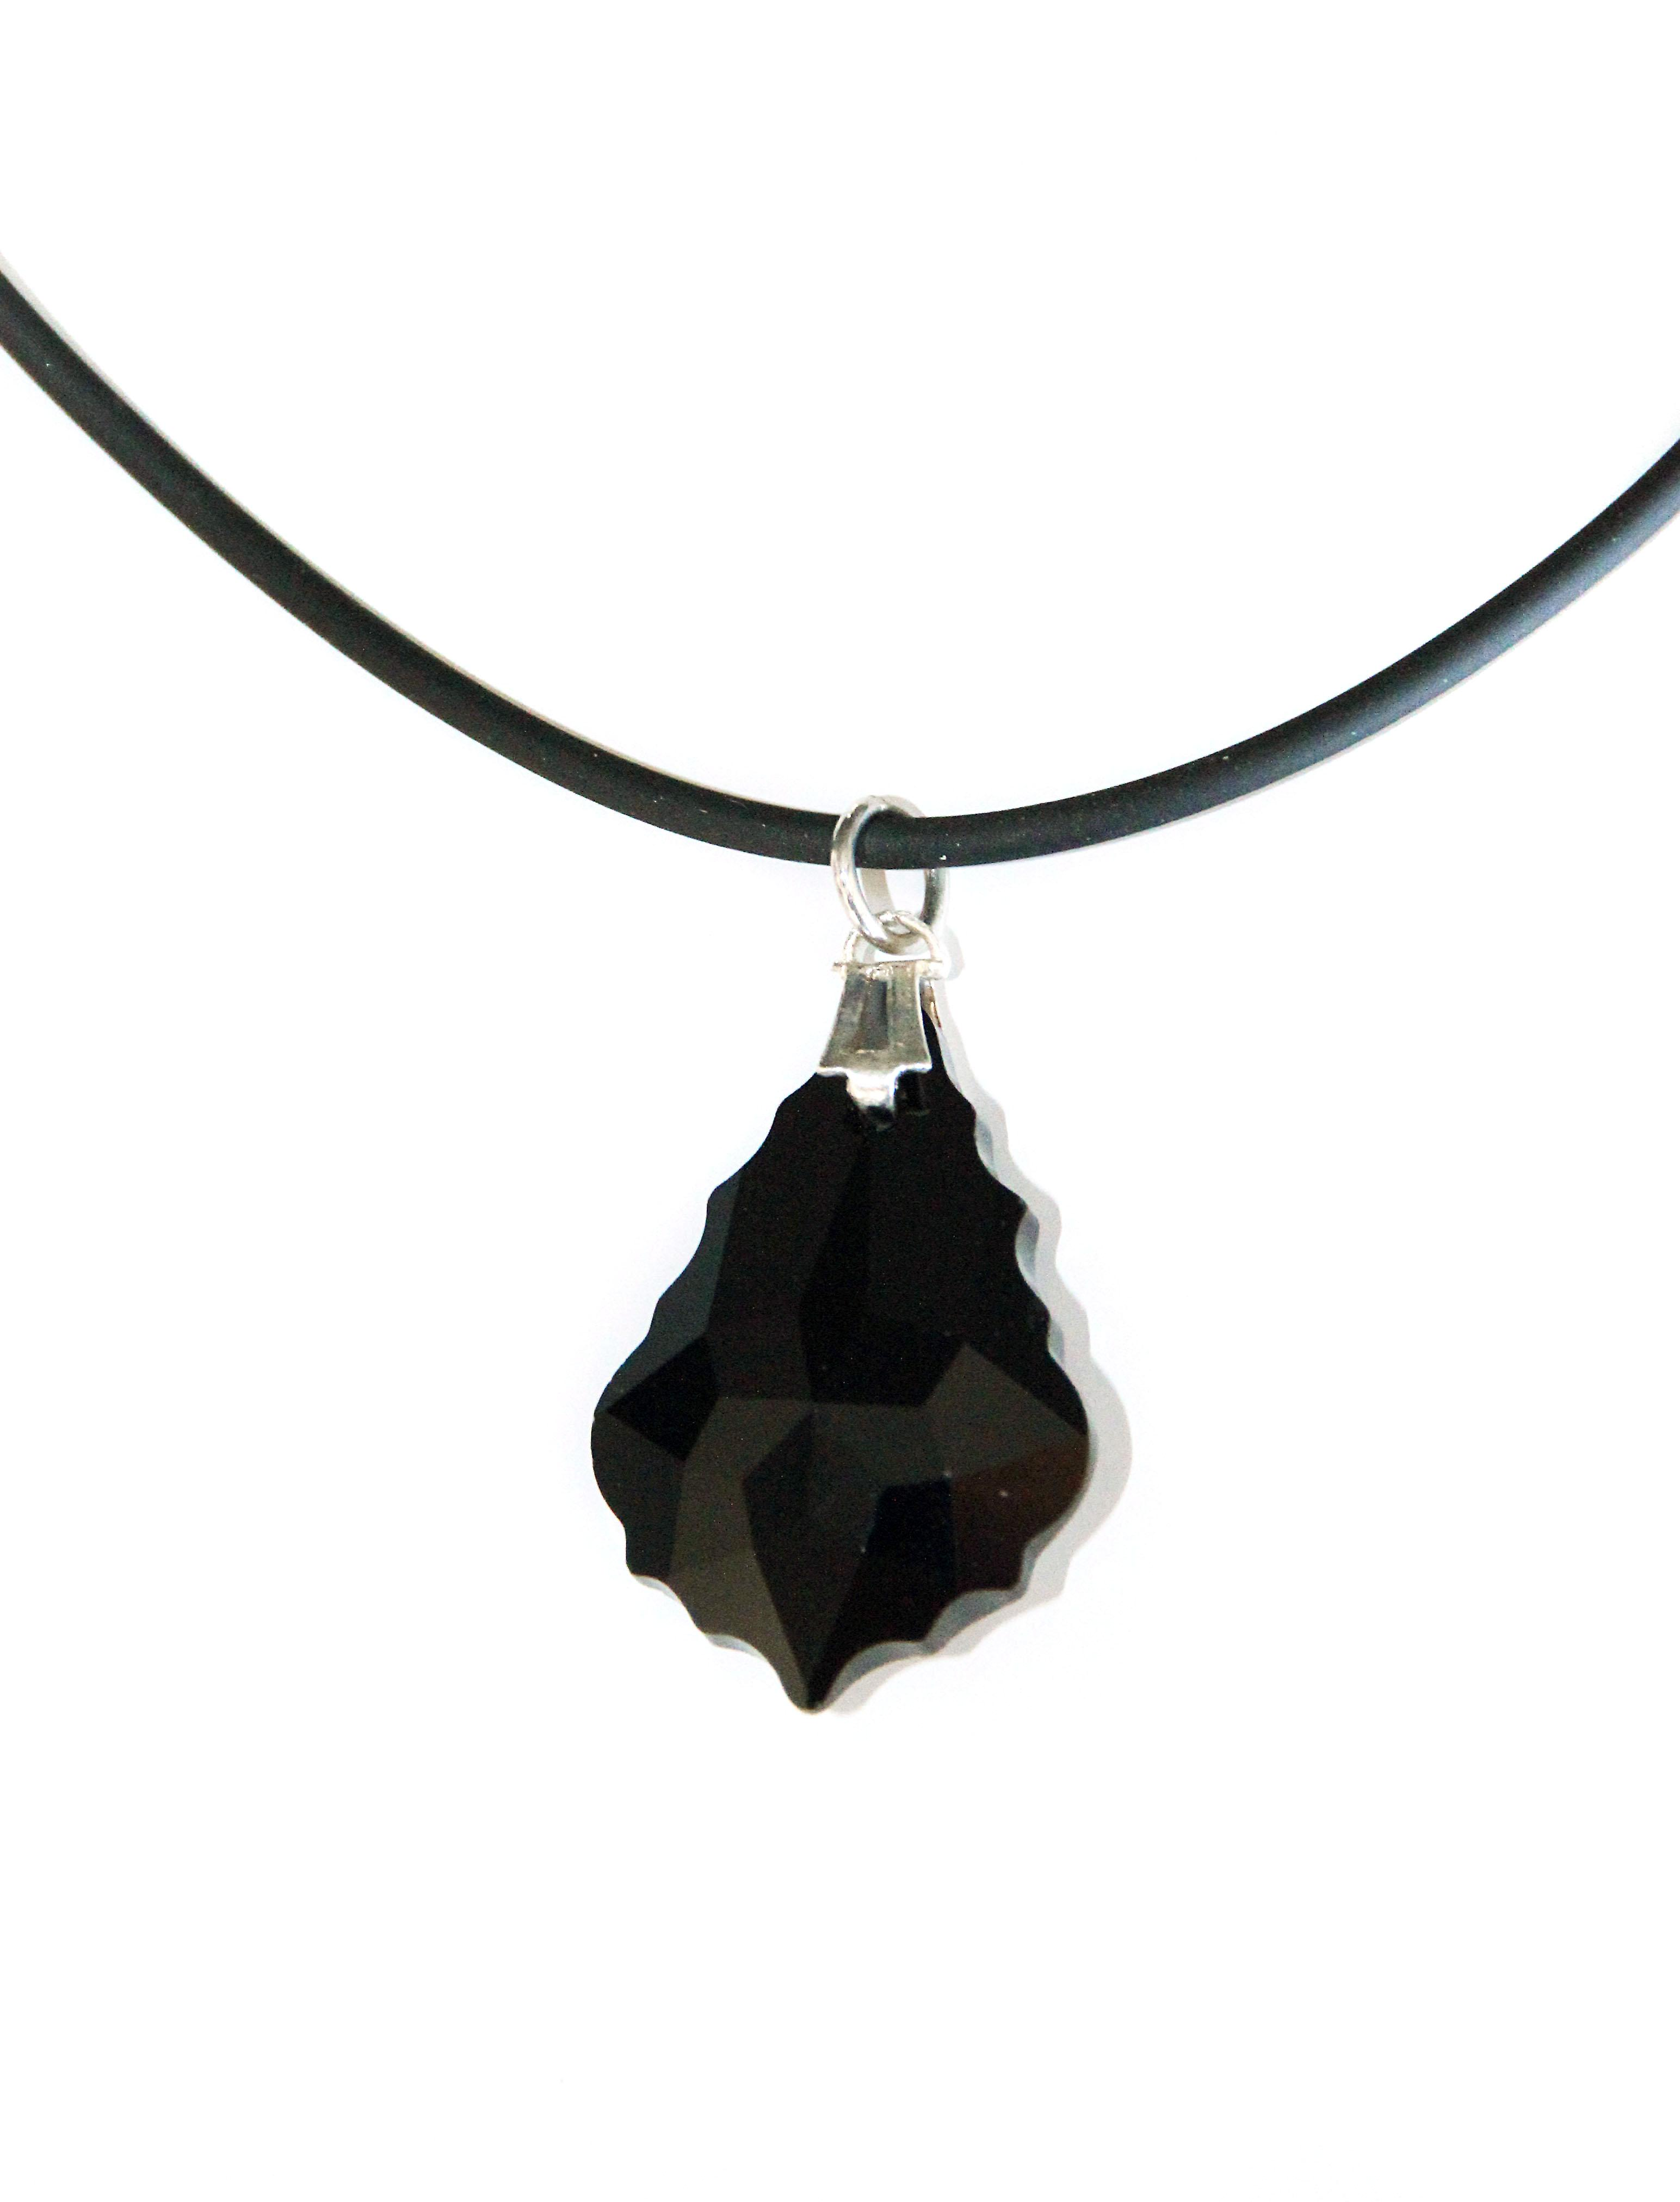 Waooh - Jewelry - Swarovski / Pendant matte black rubber cord and tear - Wholesale